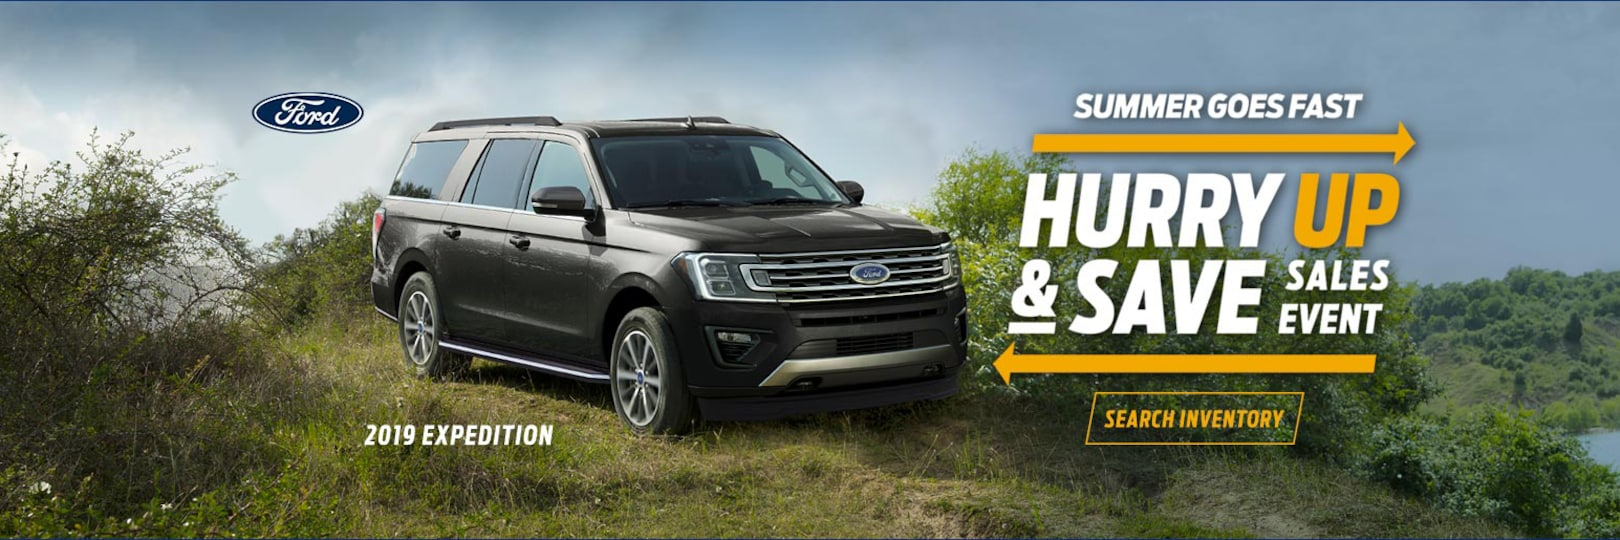 2018 Ford Escape Hybrid: Rumors, Arrival, Price >> Cooper Ford Ford Dealership In Carthage Nc